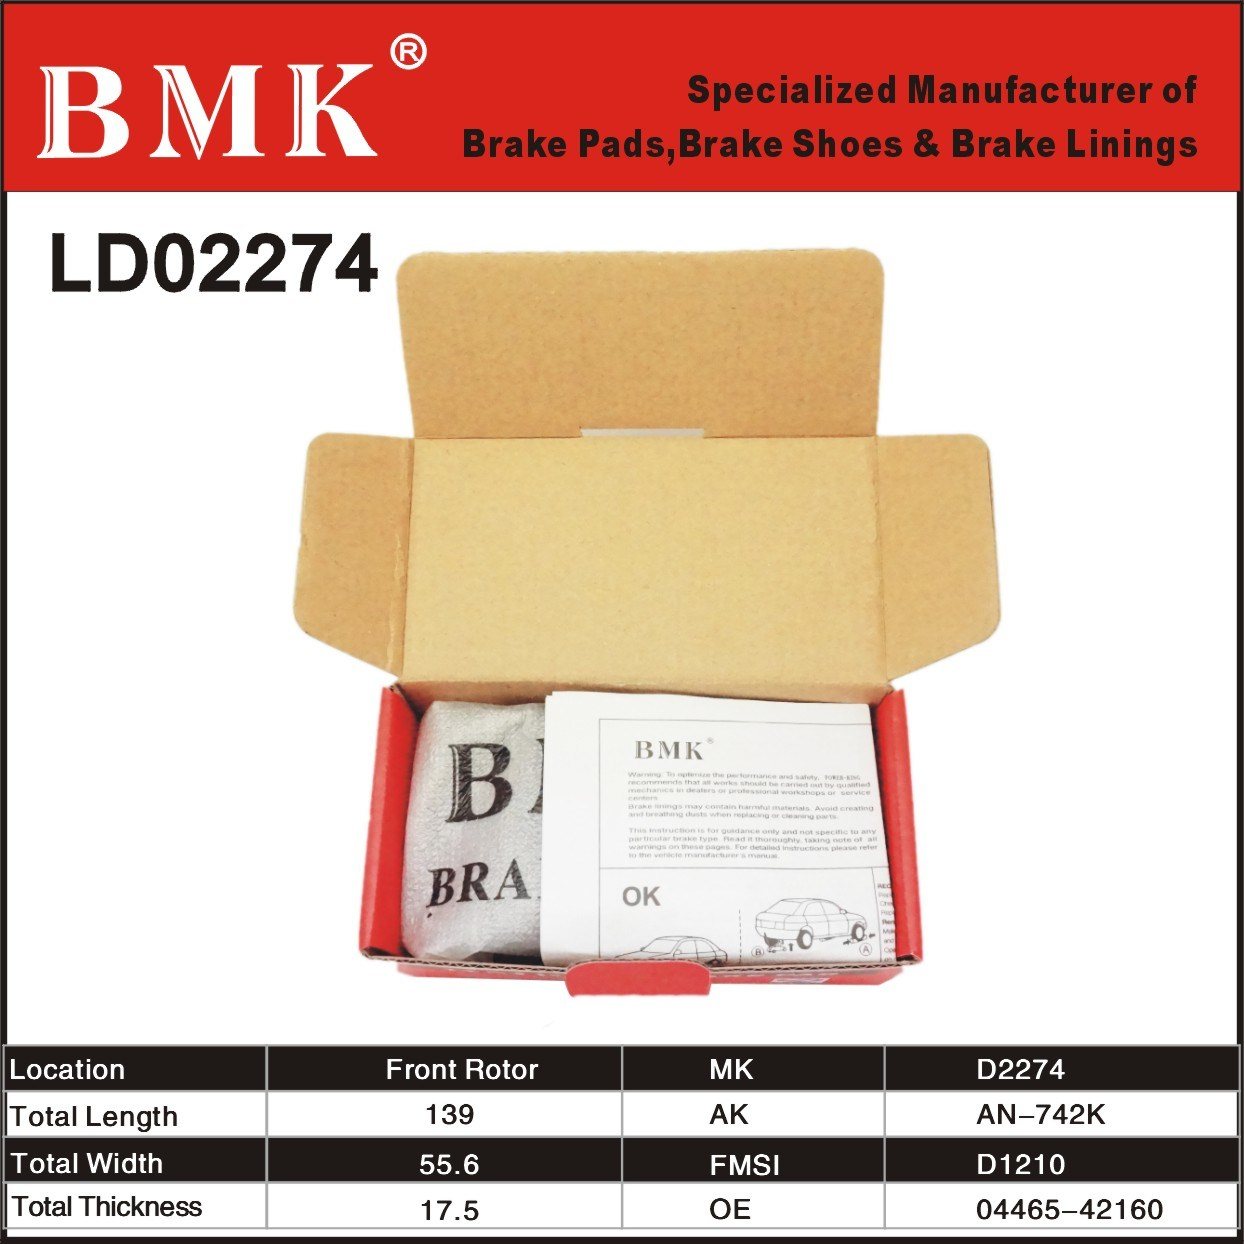 Premium Semi-Metallic Brake Pads (D2274)